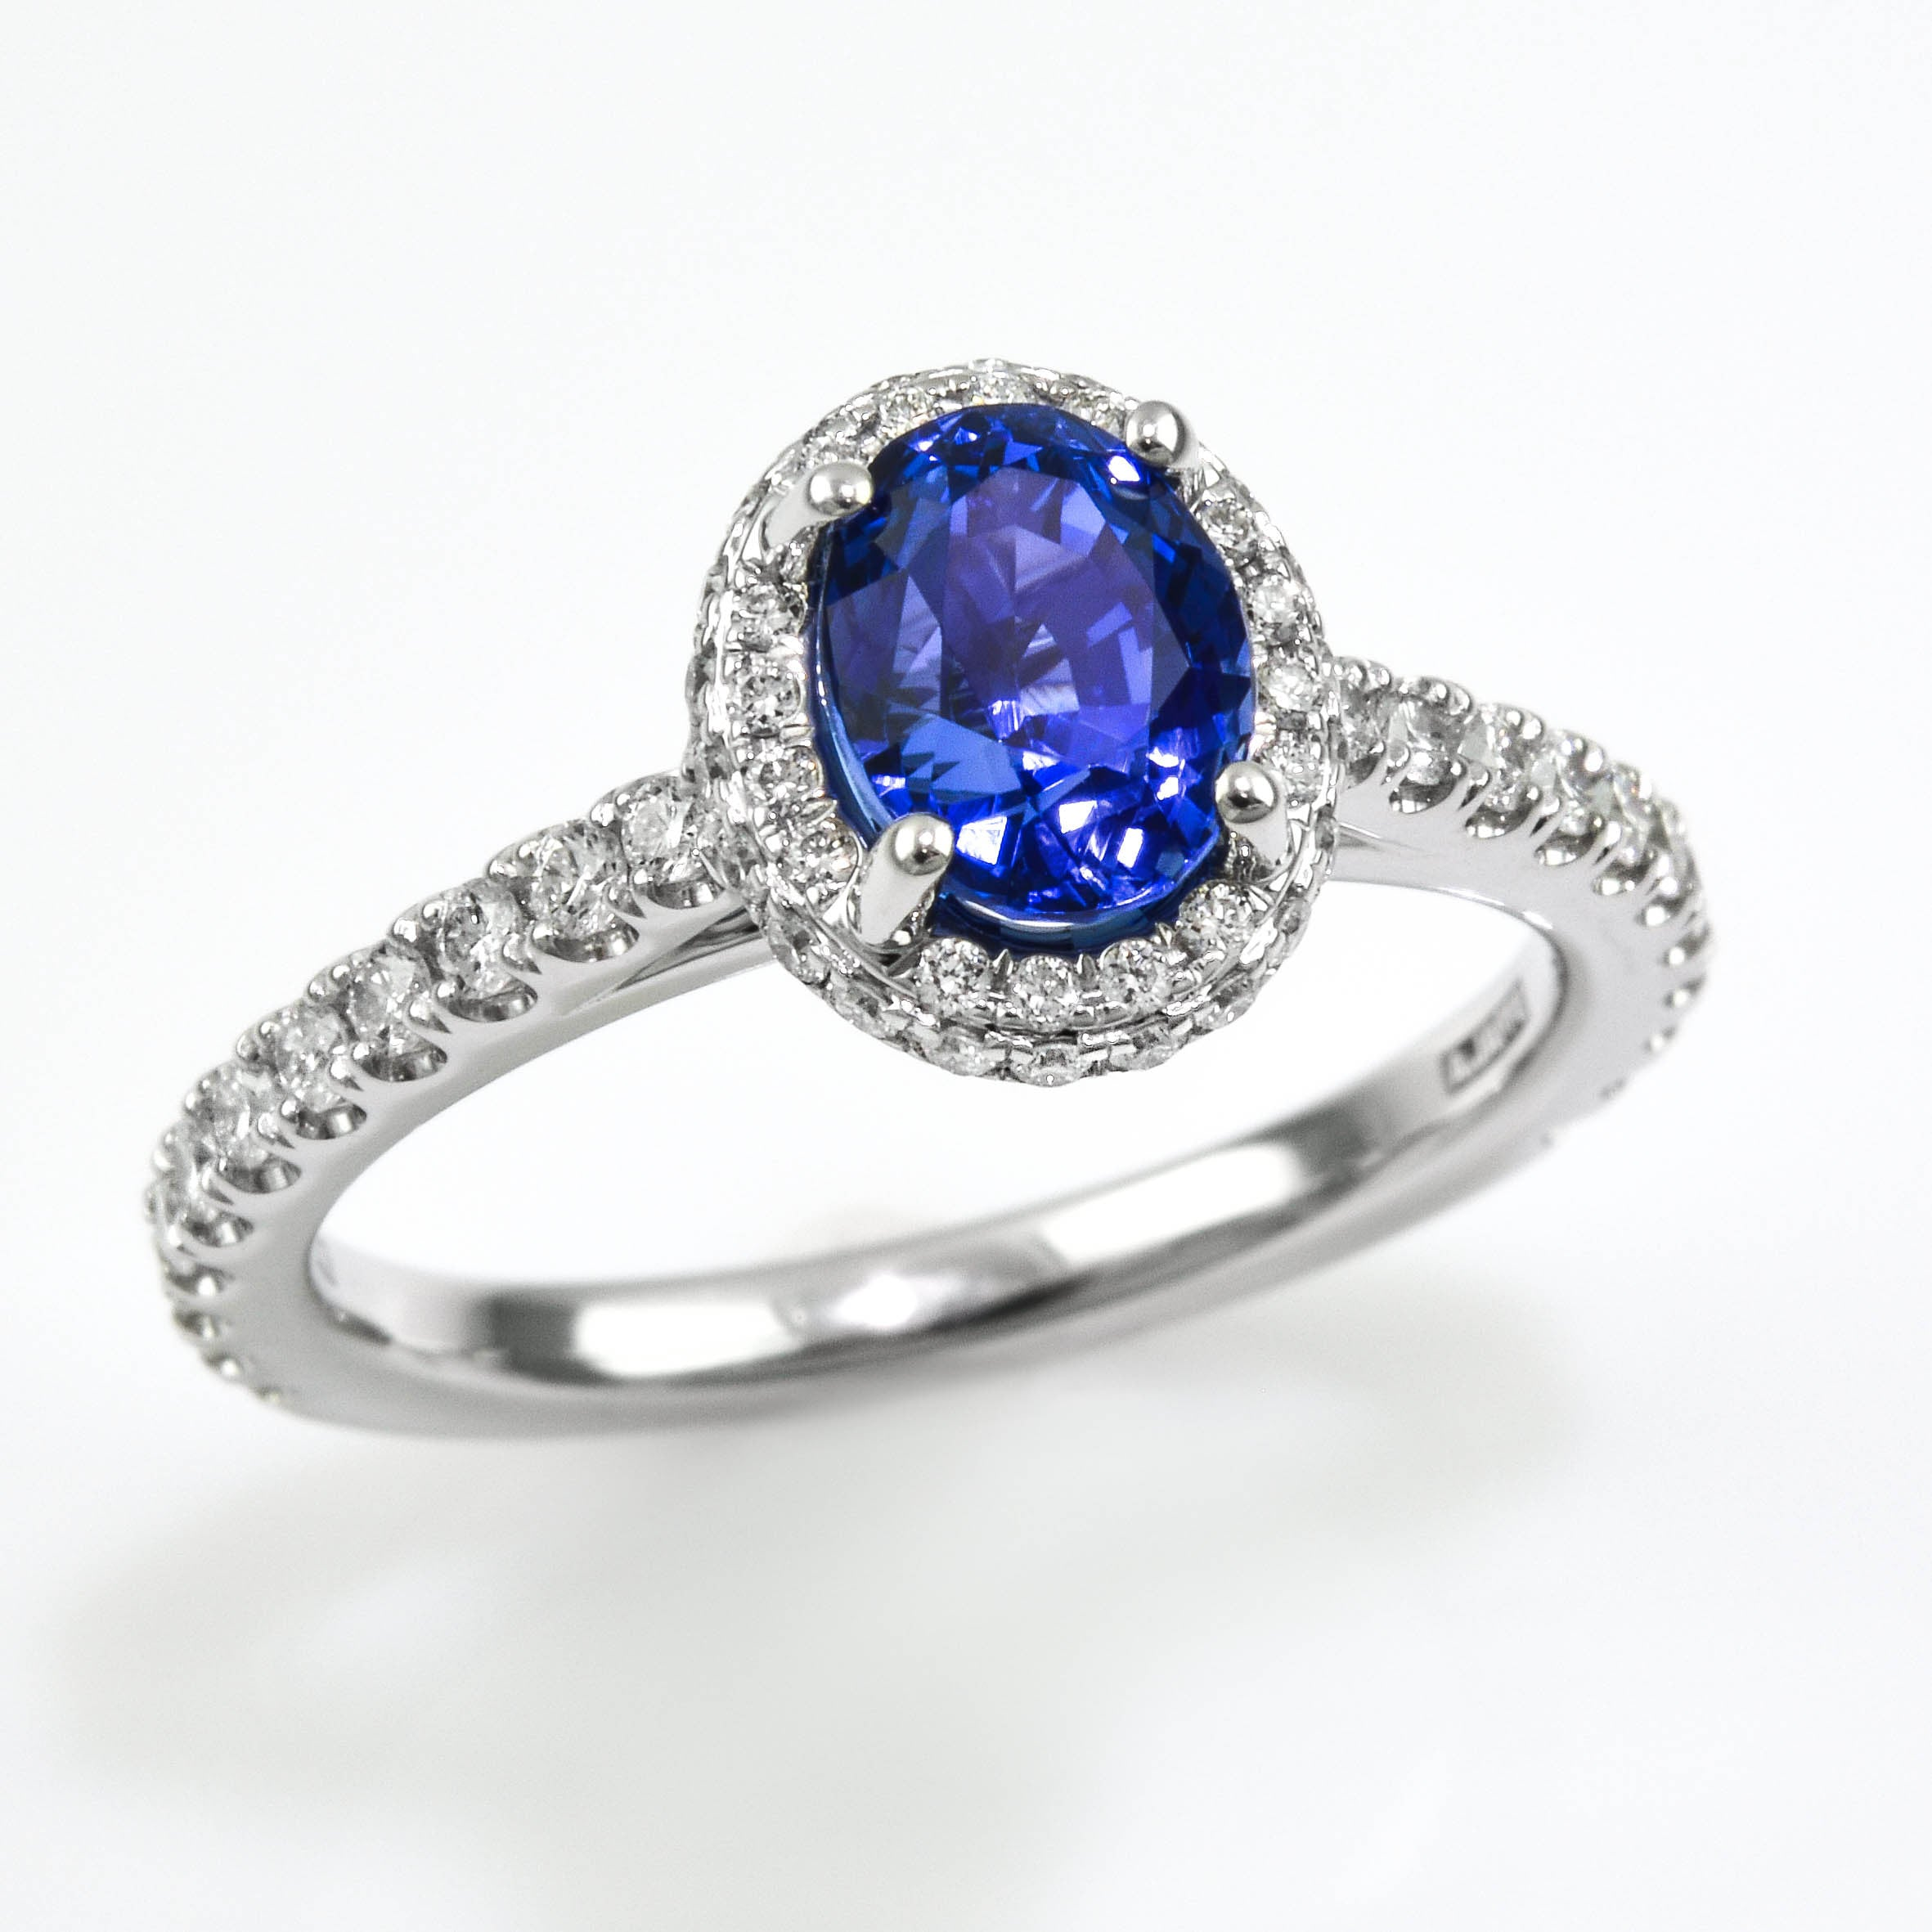 Birthstone Engagement Rings: The Hot New Trend